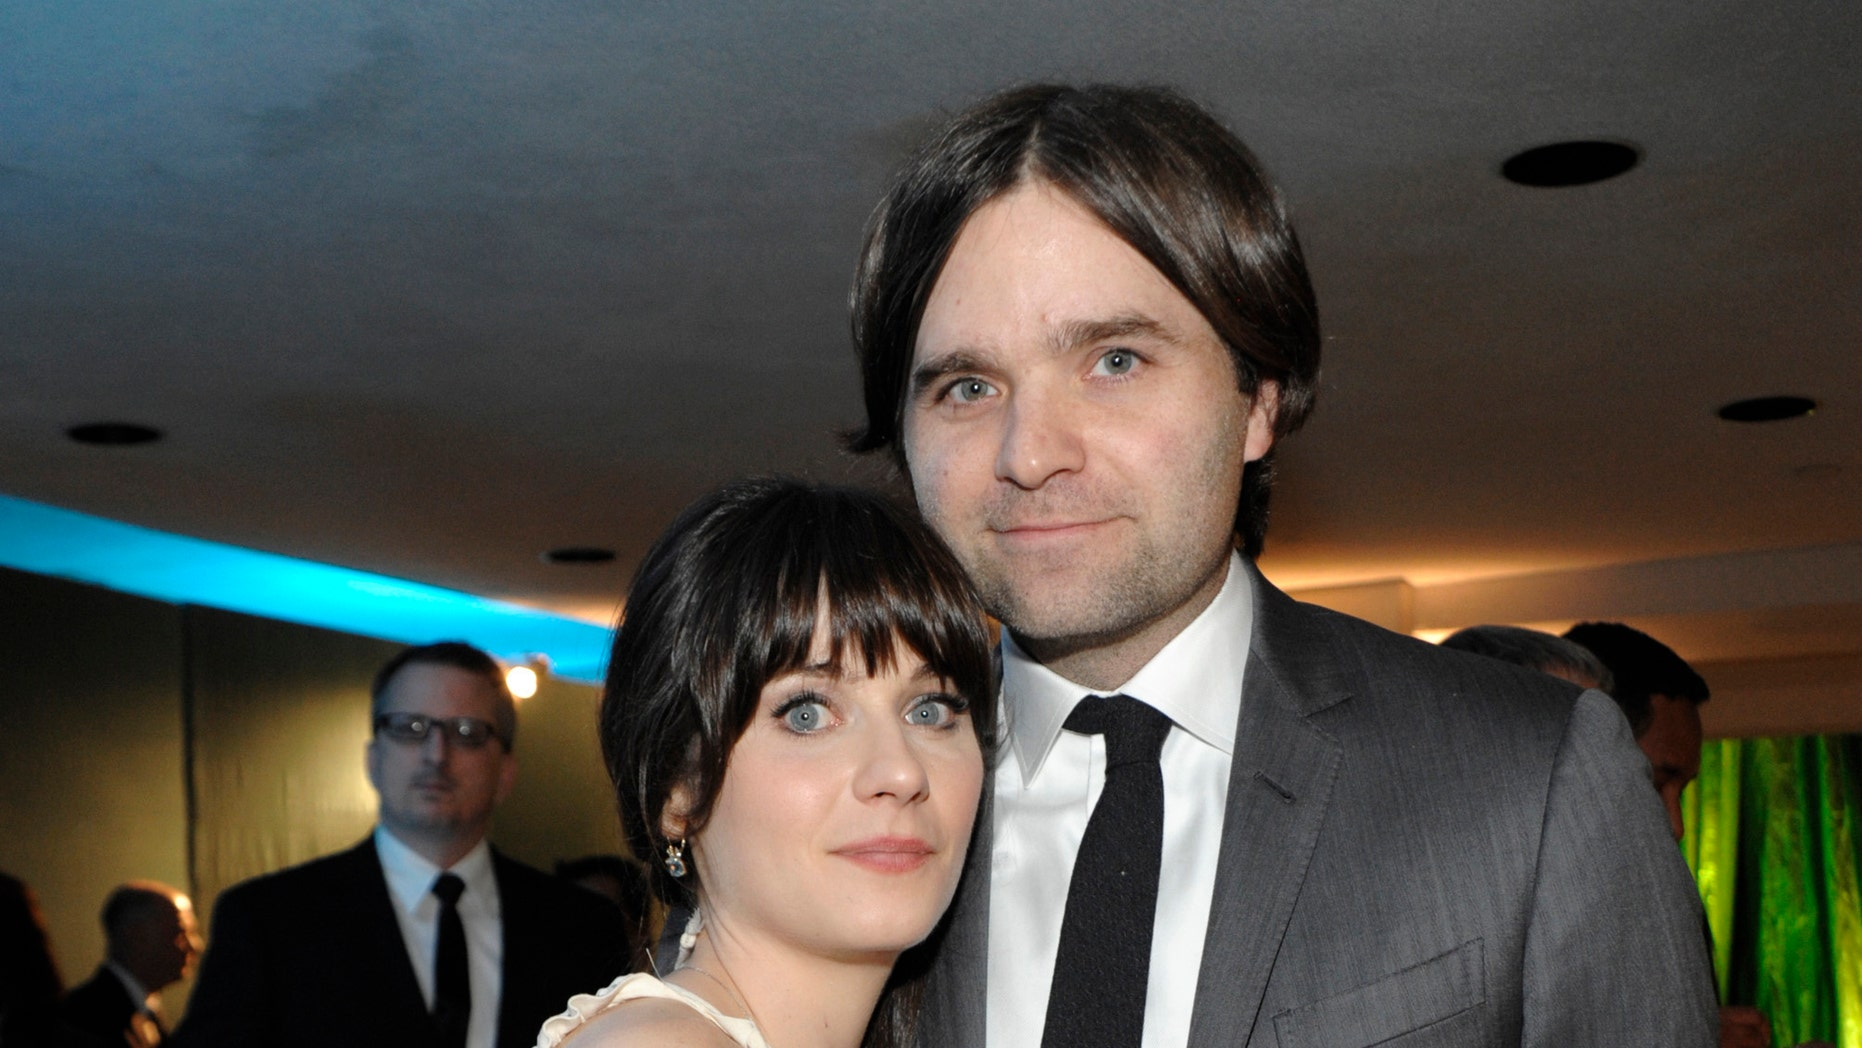 Jan. 16, 2011: File photo, actress Zooey Deschanel, left, and her husband, singer Ben Gibbard attend the 2011 HBO Golden Globe Party in Beverly Hills, Calif. Court records show a Los Angeles judge finalized the former couple's divorce on Dec. 12, 2012. The pair were married in 2009 and separated in October 2011.